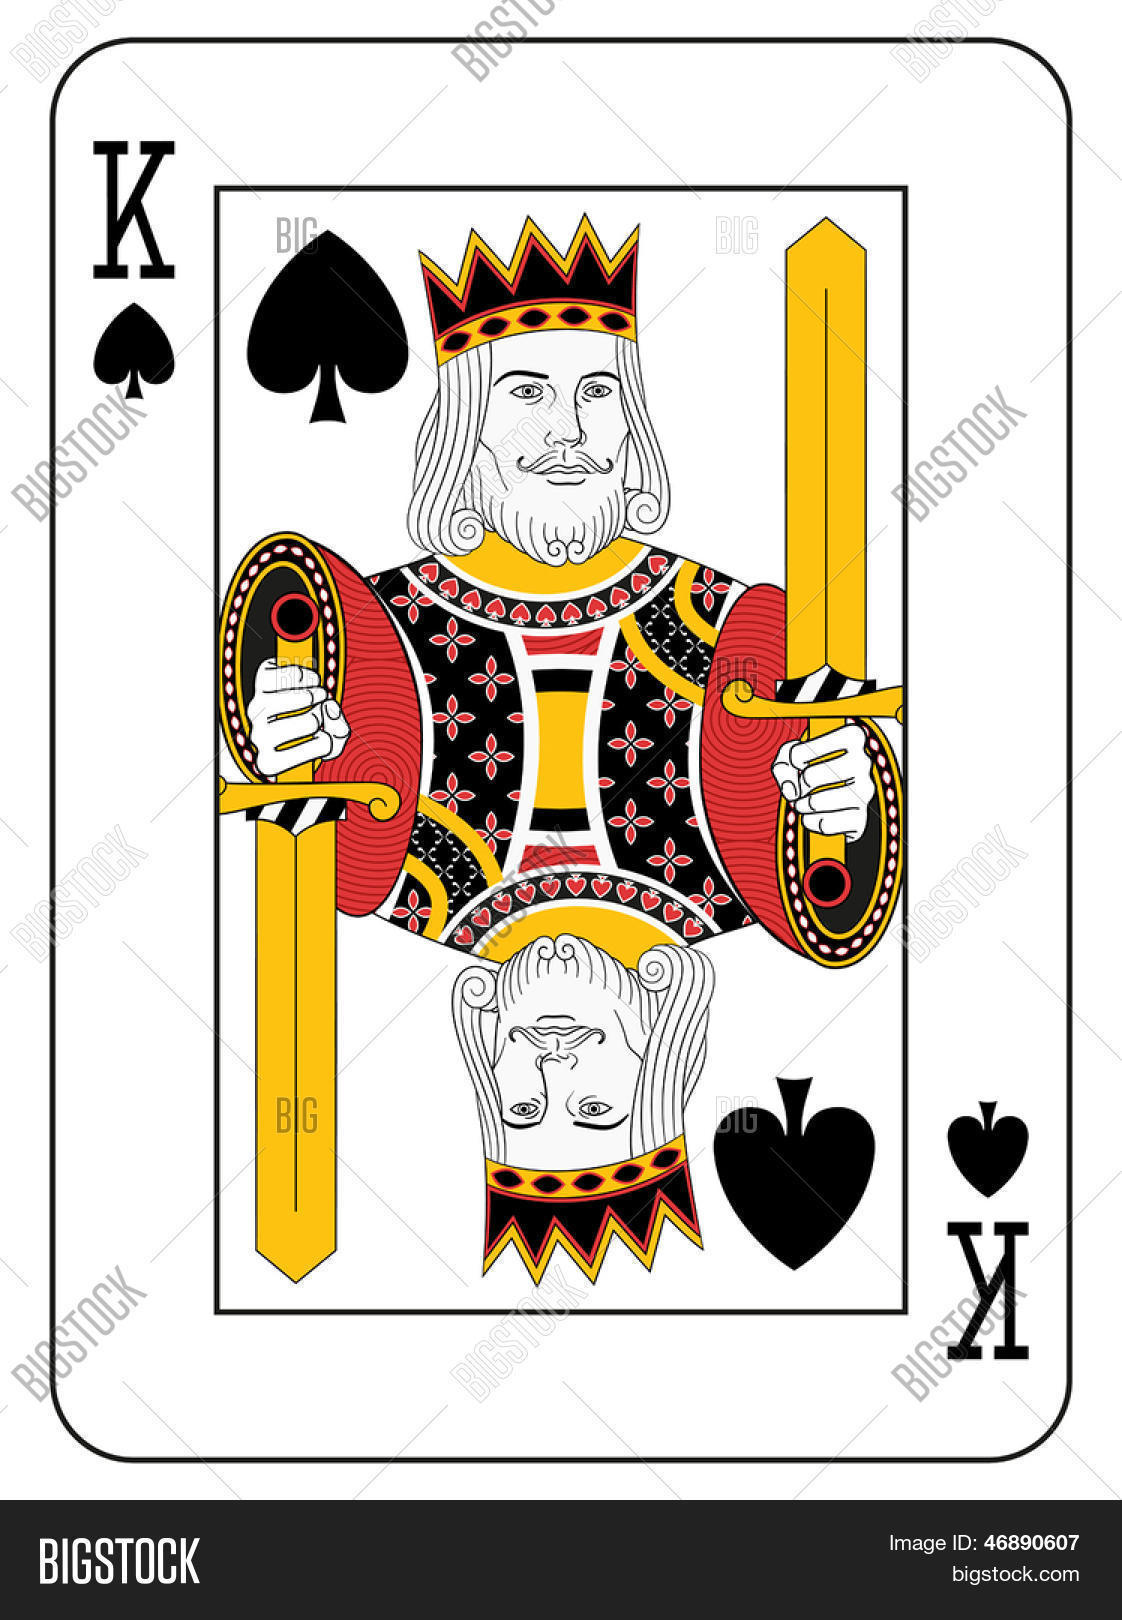 King Spades Original Vector Photo Free Trial Bigstock